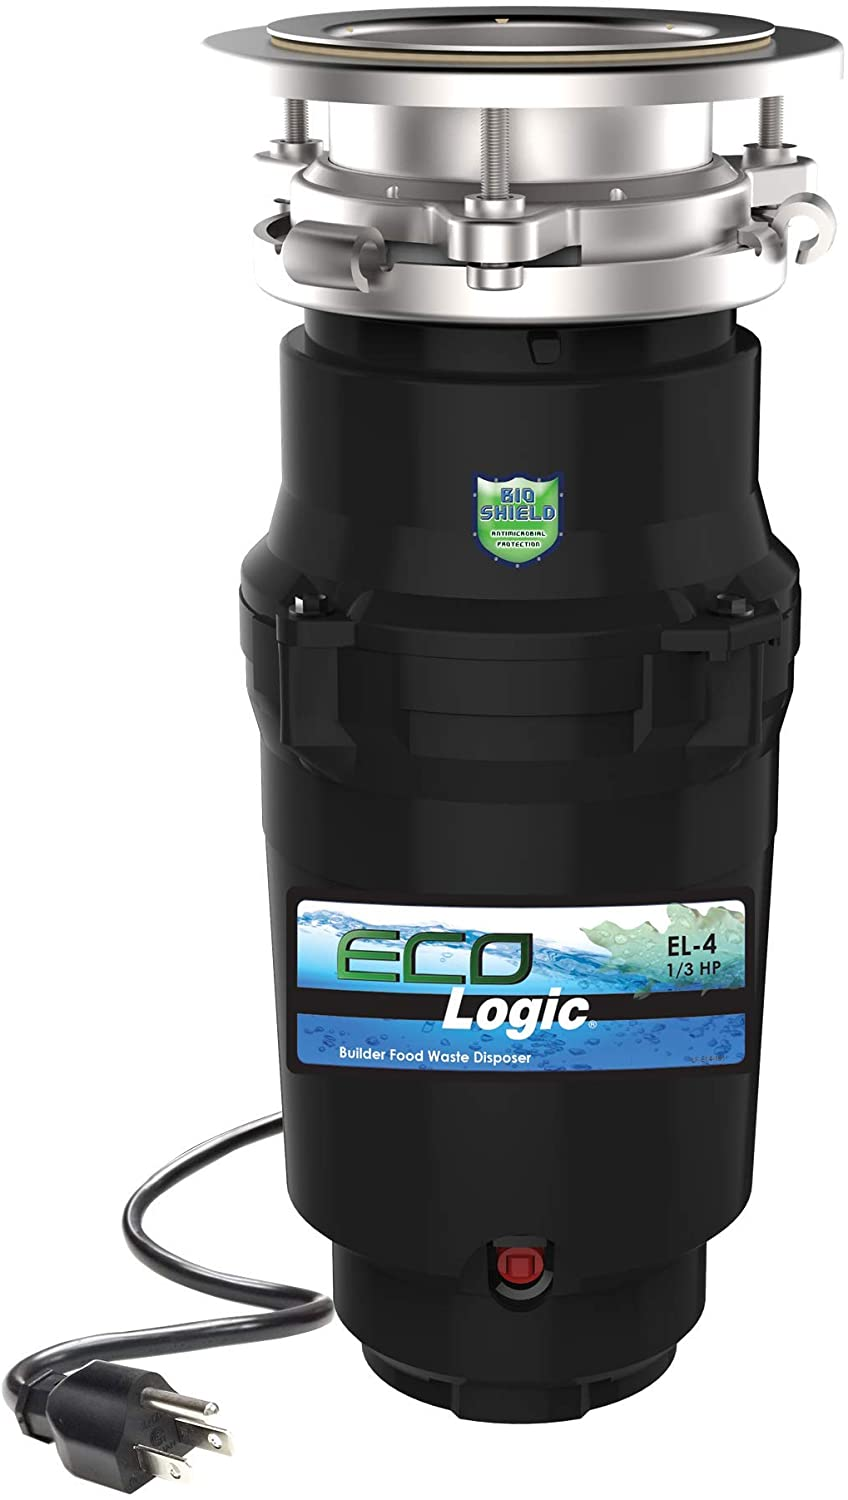 Eco Logic 10-US-EL-4-3B Garbage Disposal with Removeable Splash Guard, Attached Power Cord and Standard 3-Bolt Mounting System, Continuous Feed, 1/3 Horsepower, Black